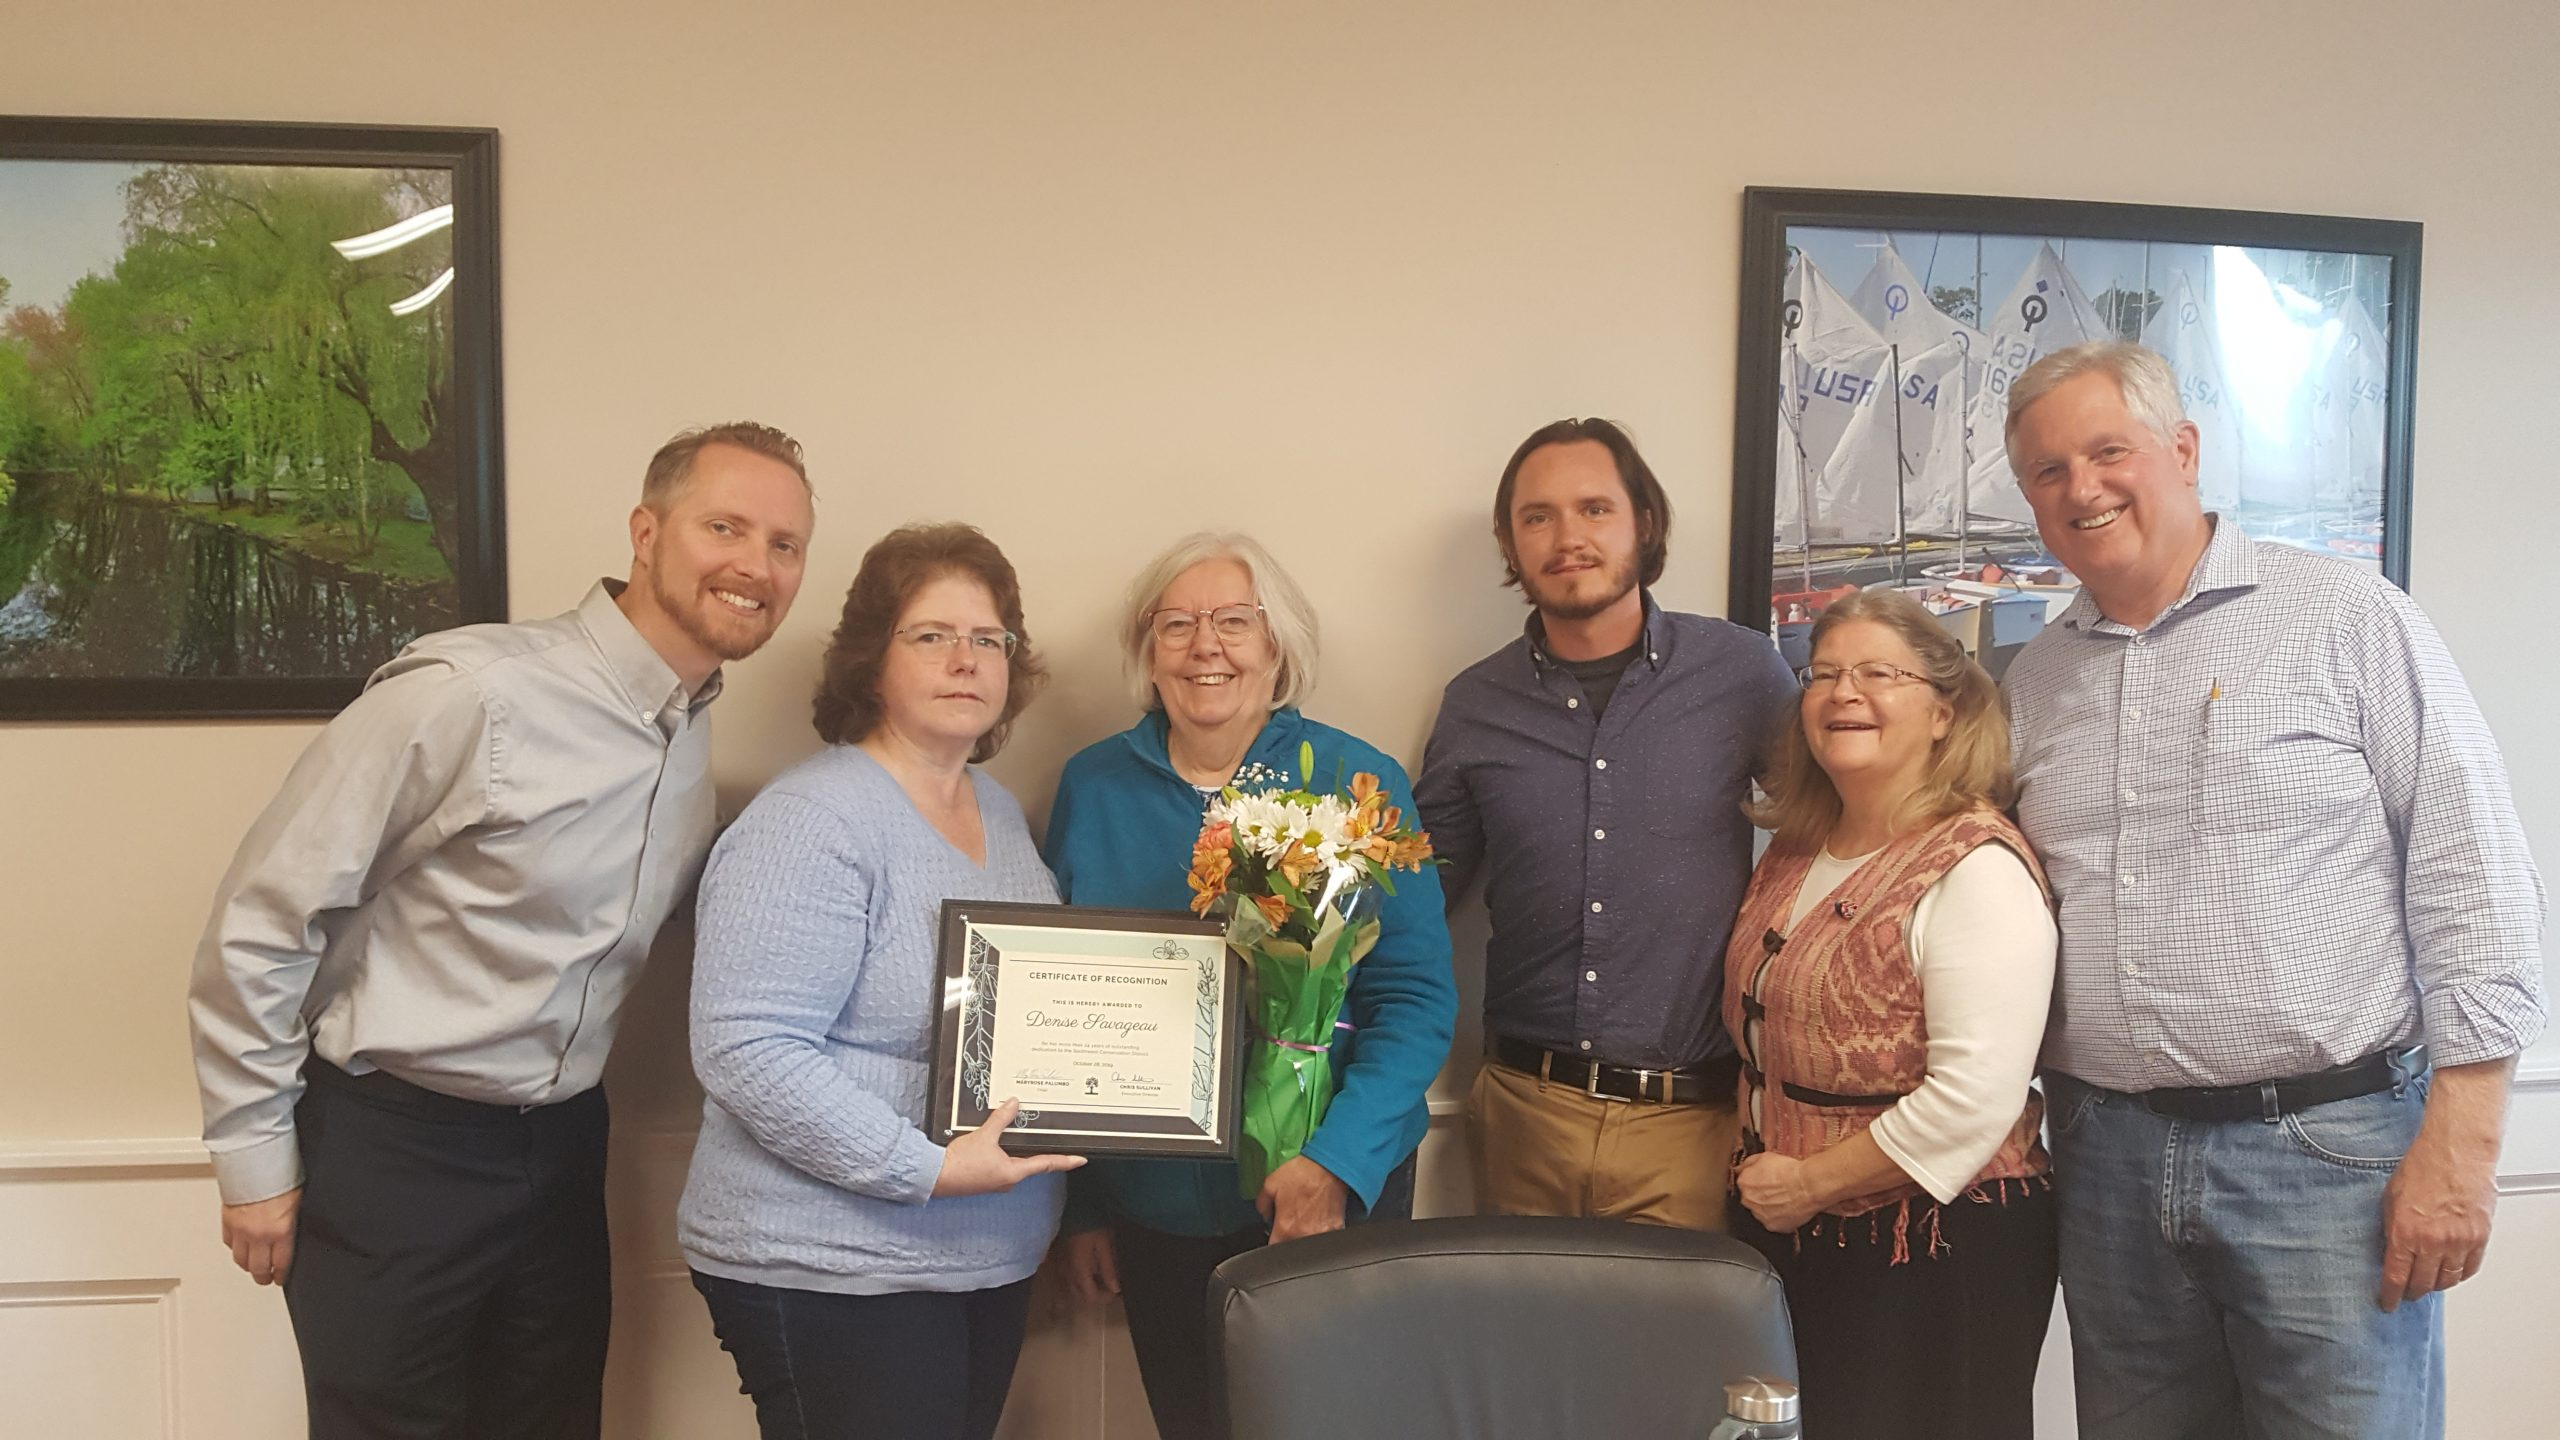 Board members and Executive Director celebrate Denise Savageau and time with SWCD